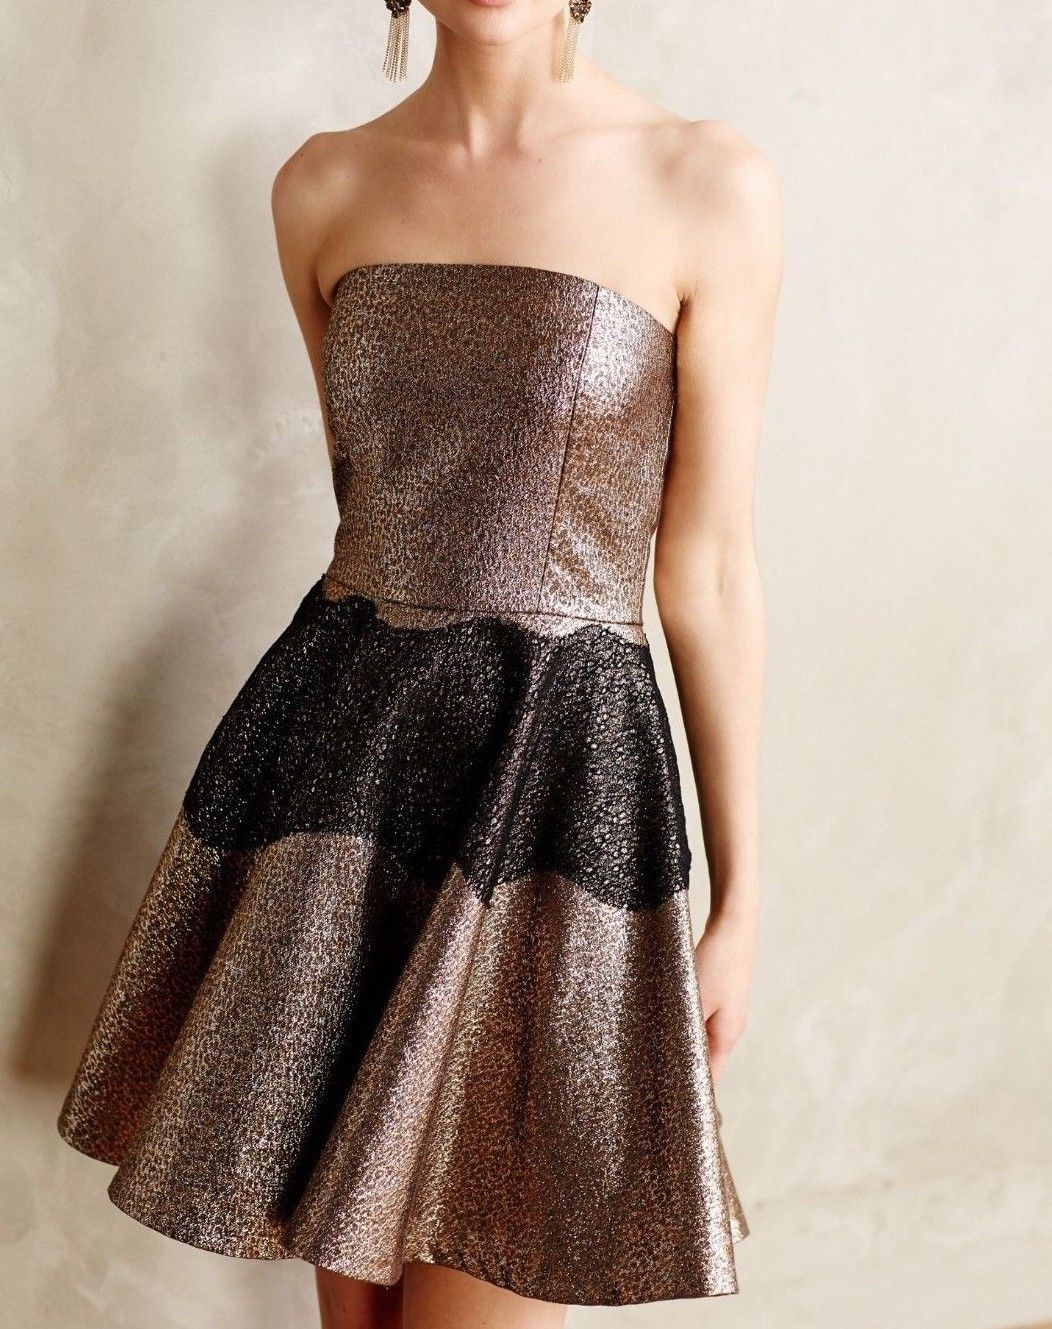 Anthropologie Foil Brocade Mini Dress by SB by Sachin and Babi $248 Sz 6 - NWOT